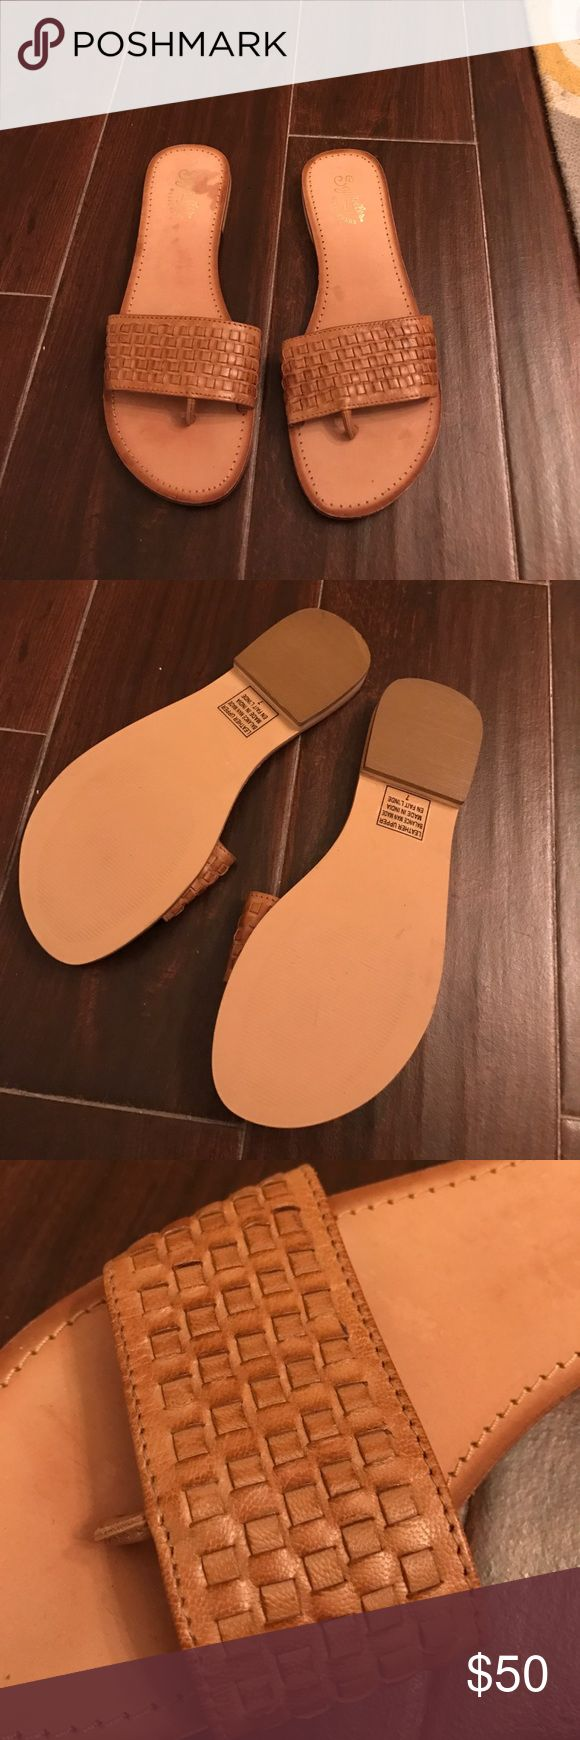 "Seychelles ""Wanders"" Flip Flops Bought from Neiman Marcus Online, and were too tight. Size 7, but a bit narrow (although not considered narrow). Never worn. Braiding detail across the top. Light tan in color. Great casual summer staple! Seychelles Shoes Sandals"